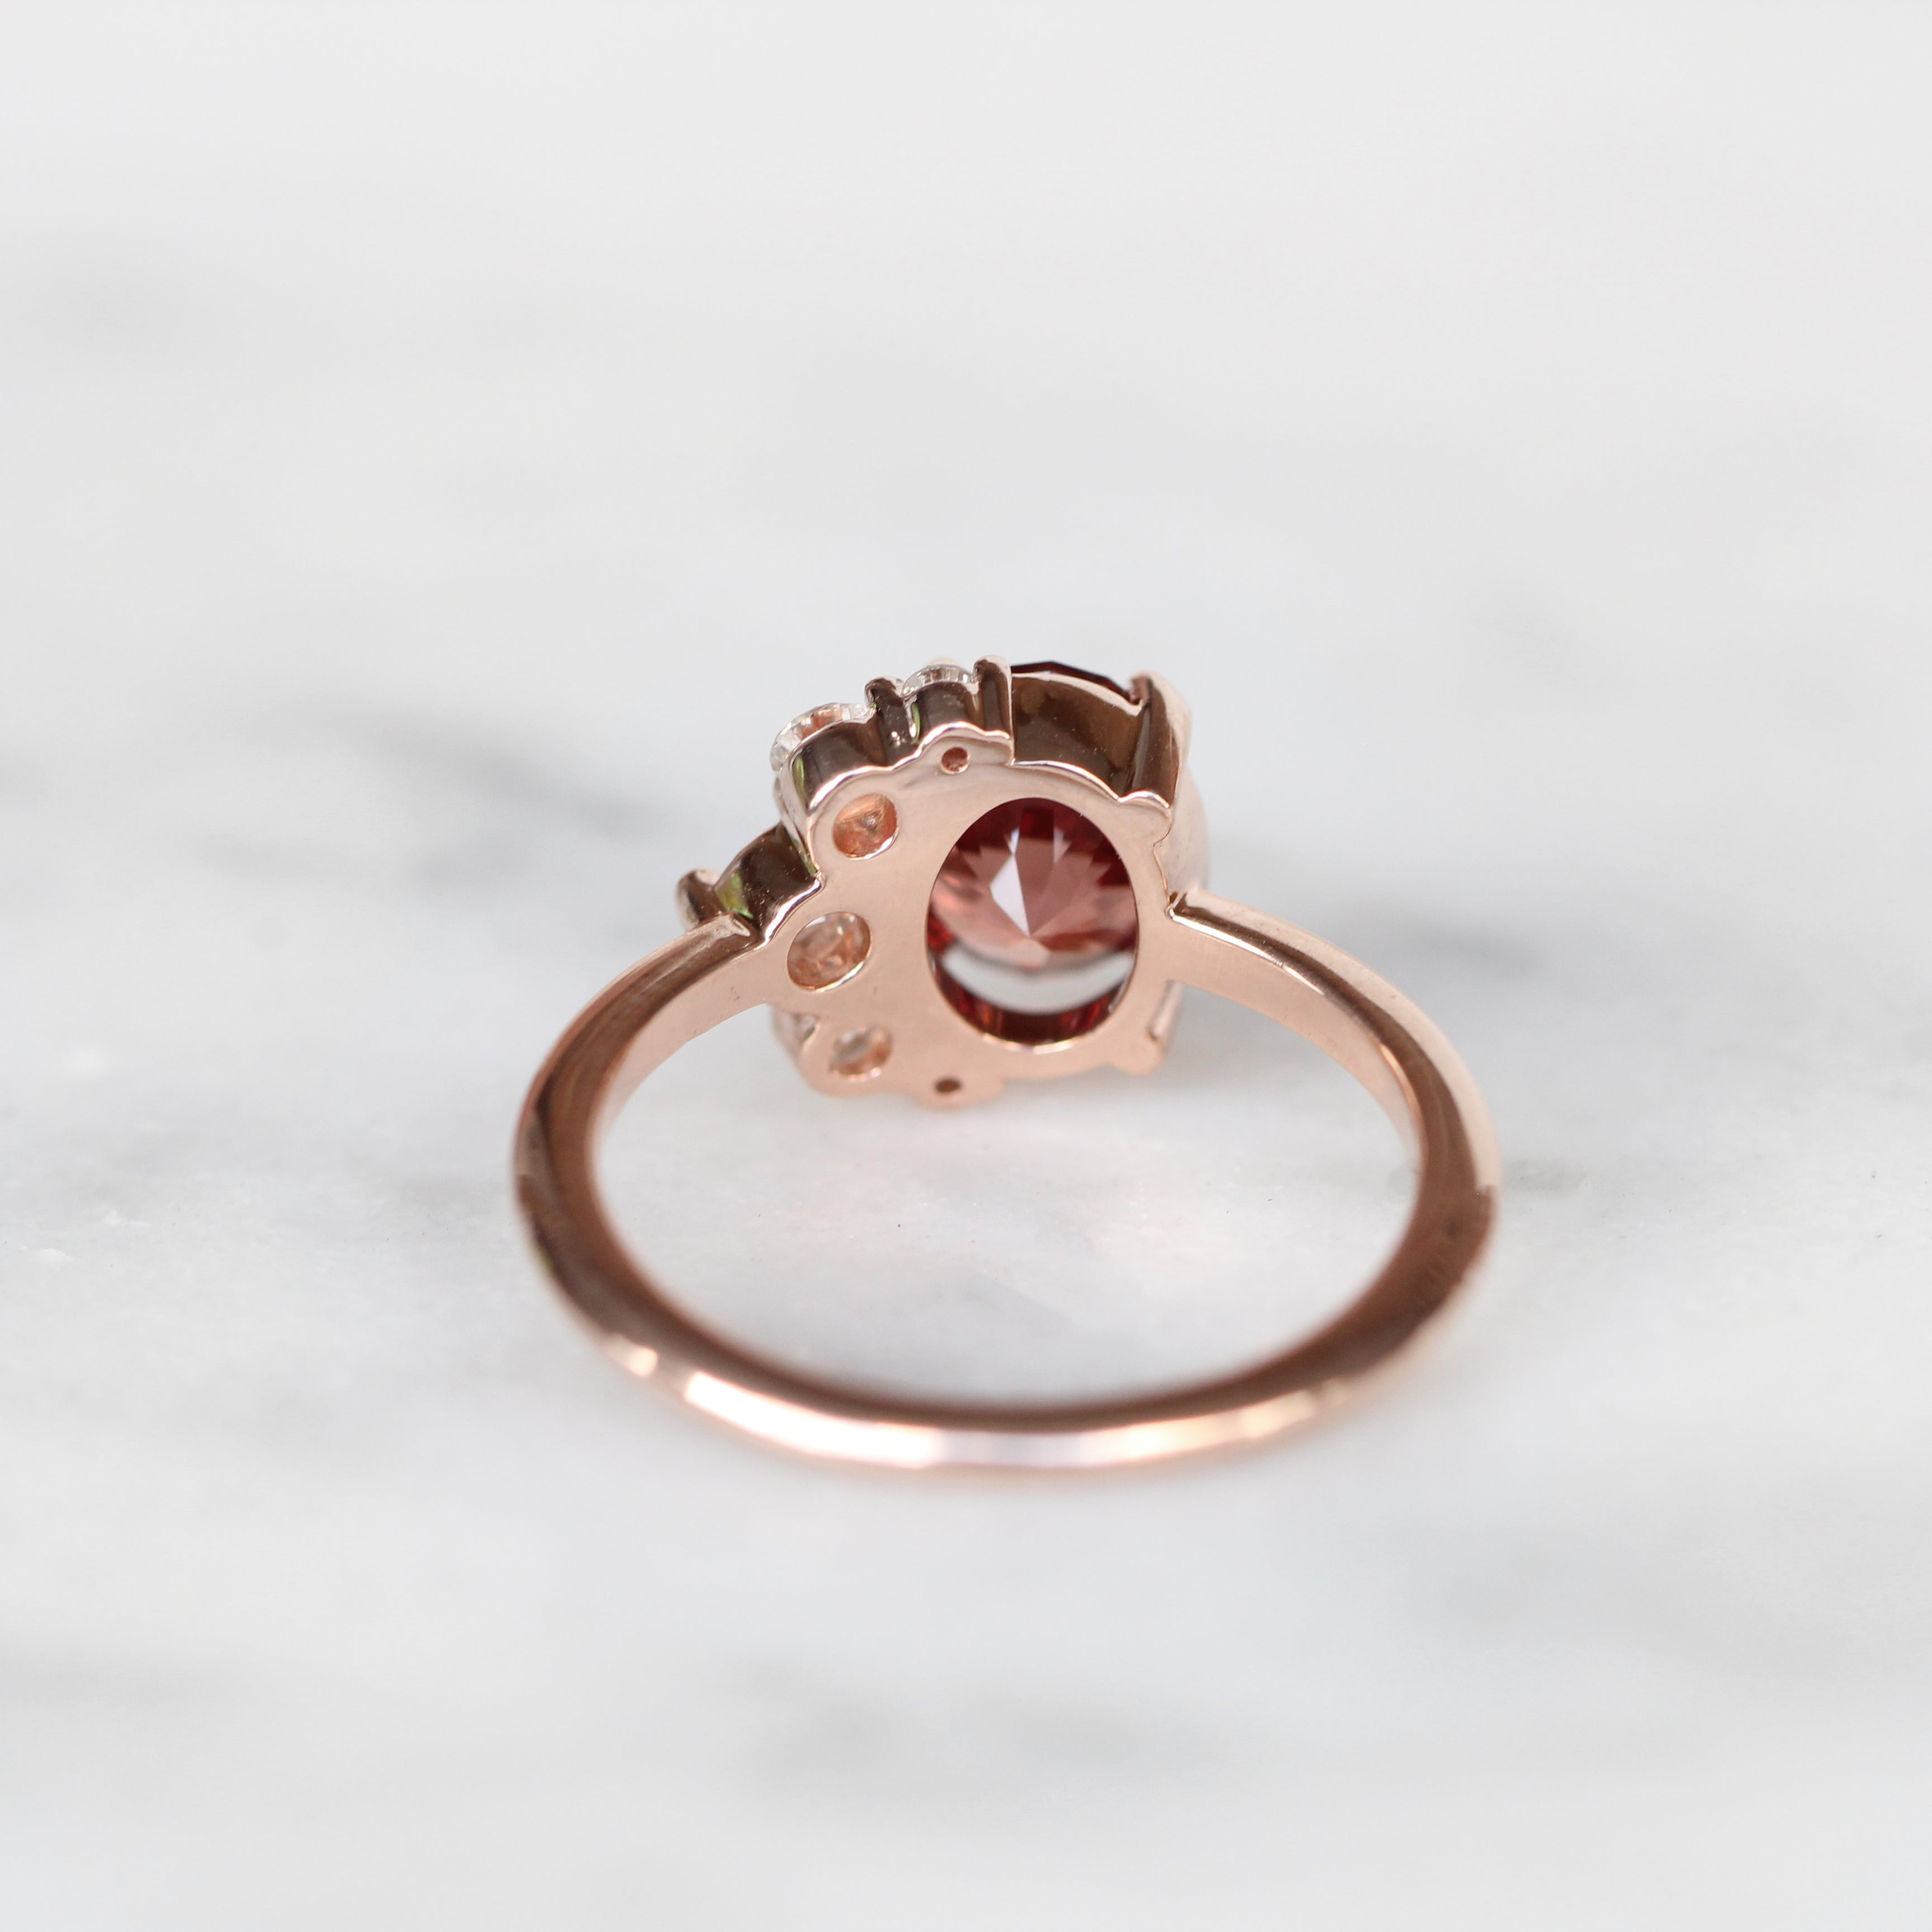 Carell ring with 2.1 ct Zircon and Diamonds in 10k rose gold - ready to size and ship - Celestial Diamonds ® by Midwinter Co.